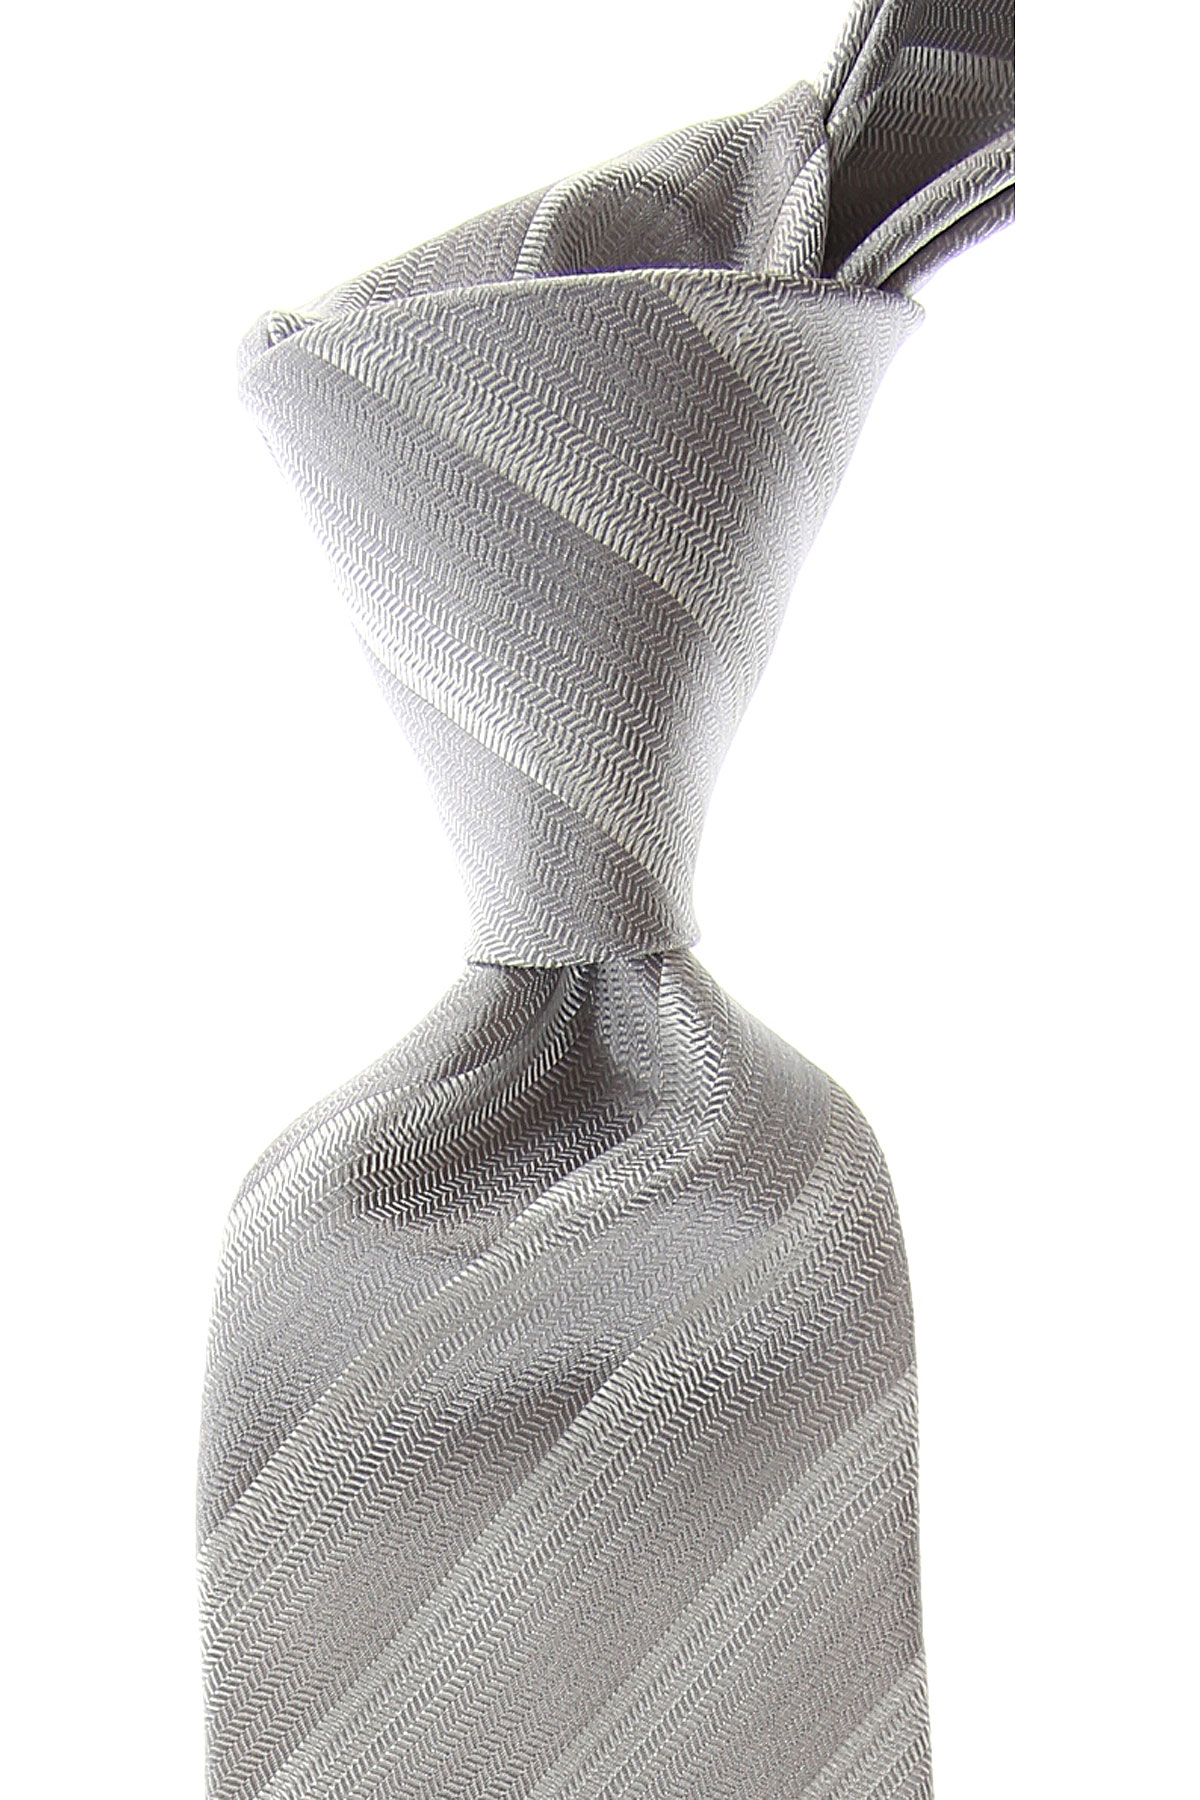 Giorgio_Armani_Ties_On_Sale_Shaded_Light_Grey_Silk_2019